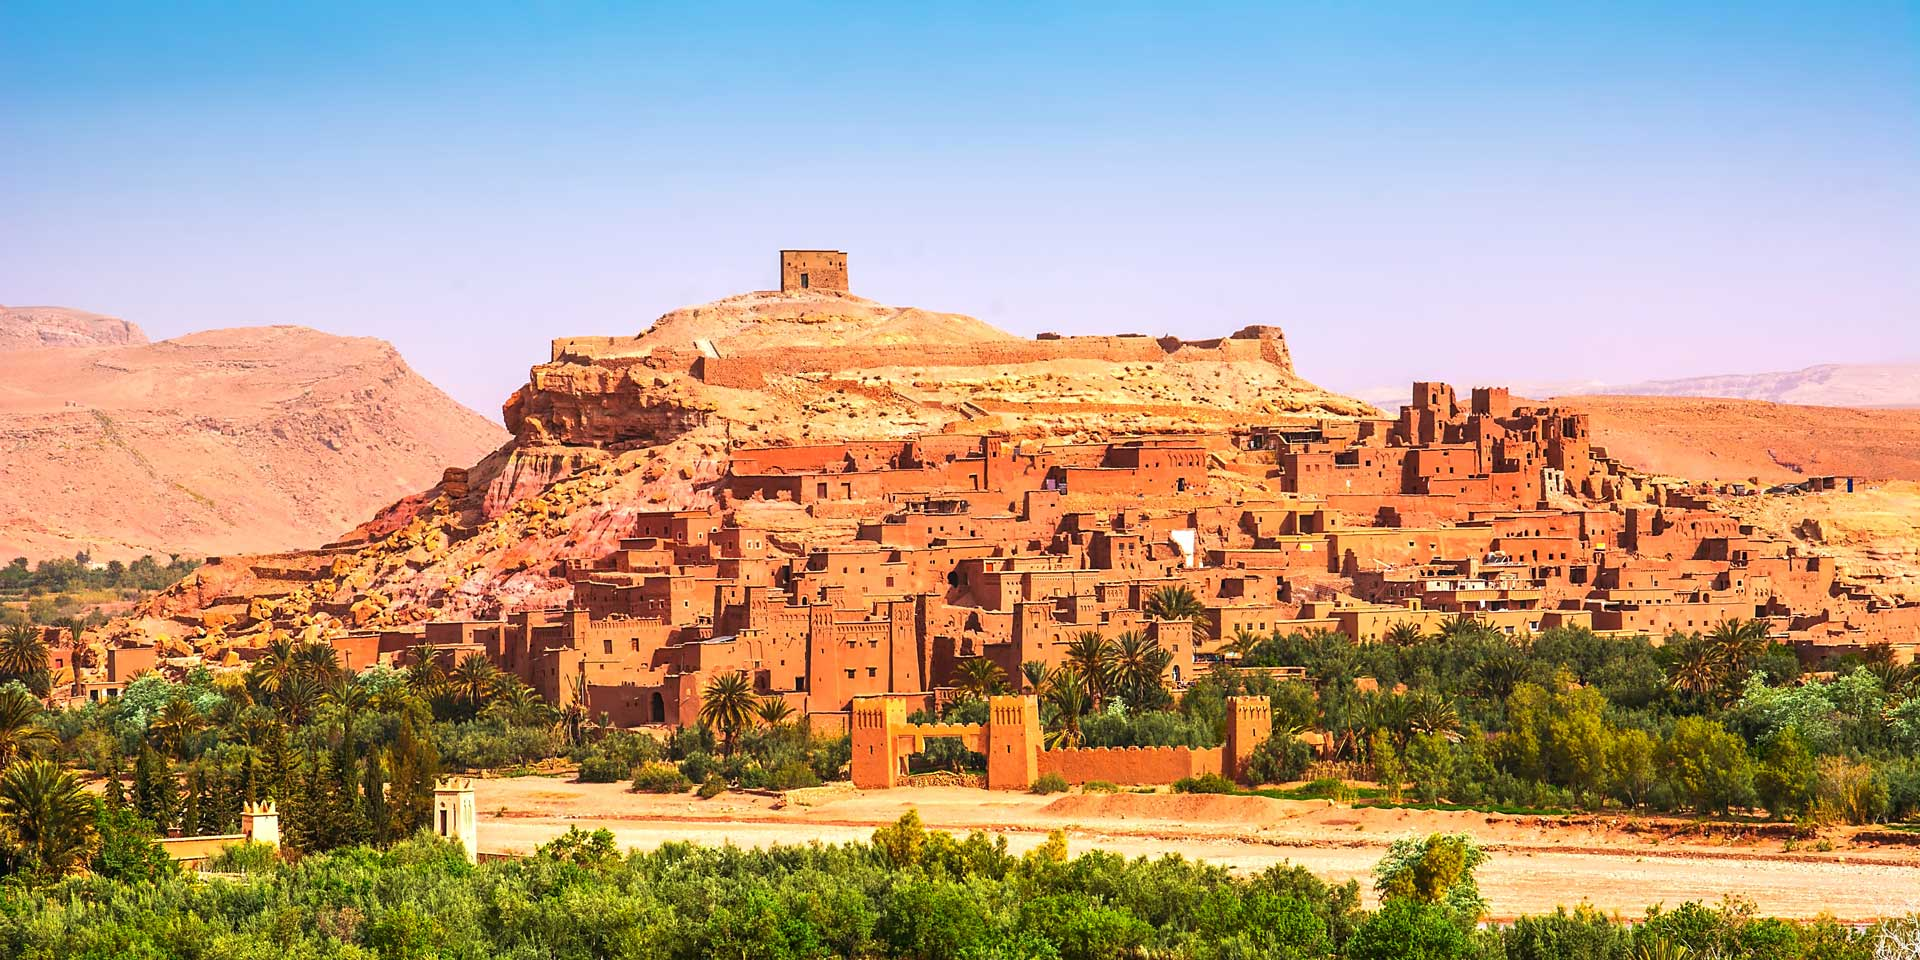 Amazing view of Kasbah Ait Ben Haddou near Ouarzazate in the Atlas Mountains of Morocco